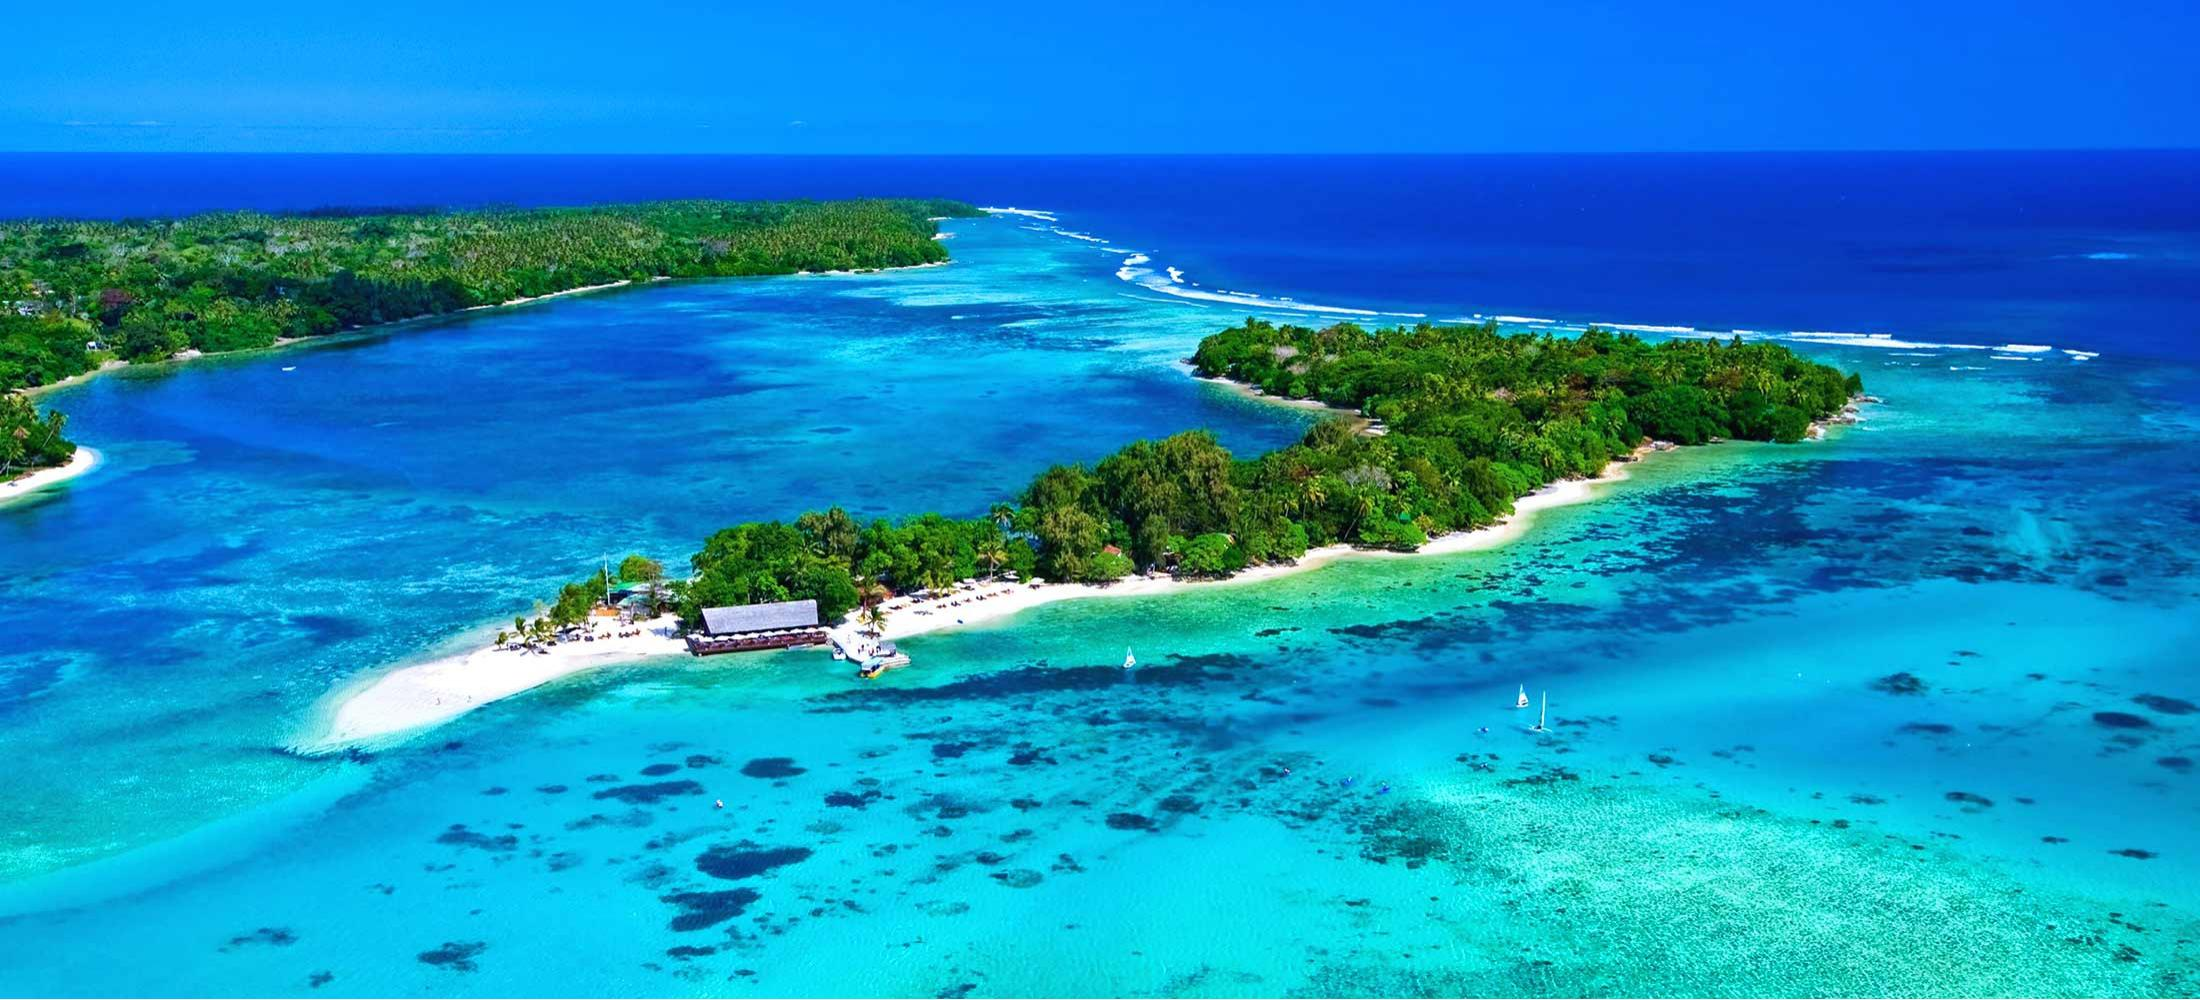 South Pacific Tours Vanuatu - Island